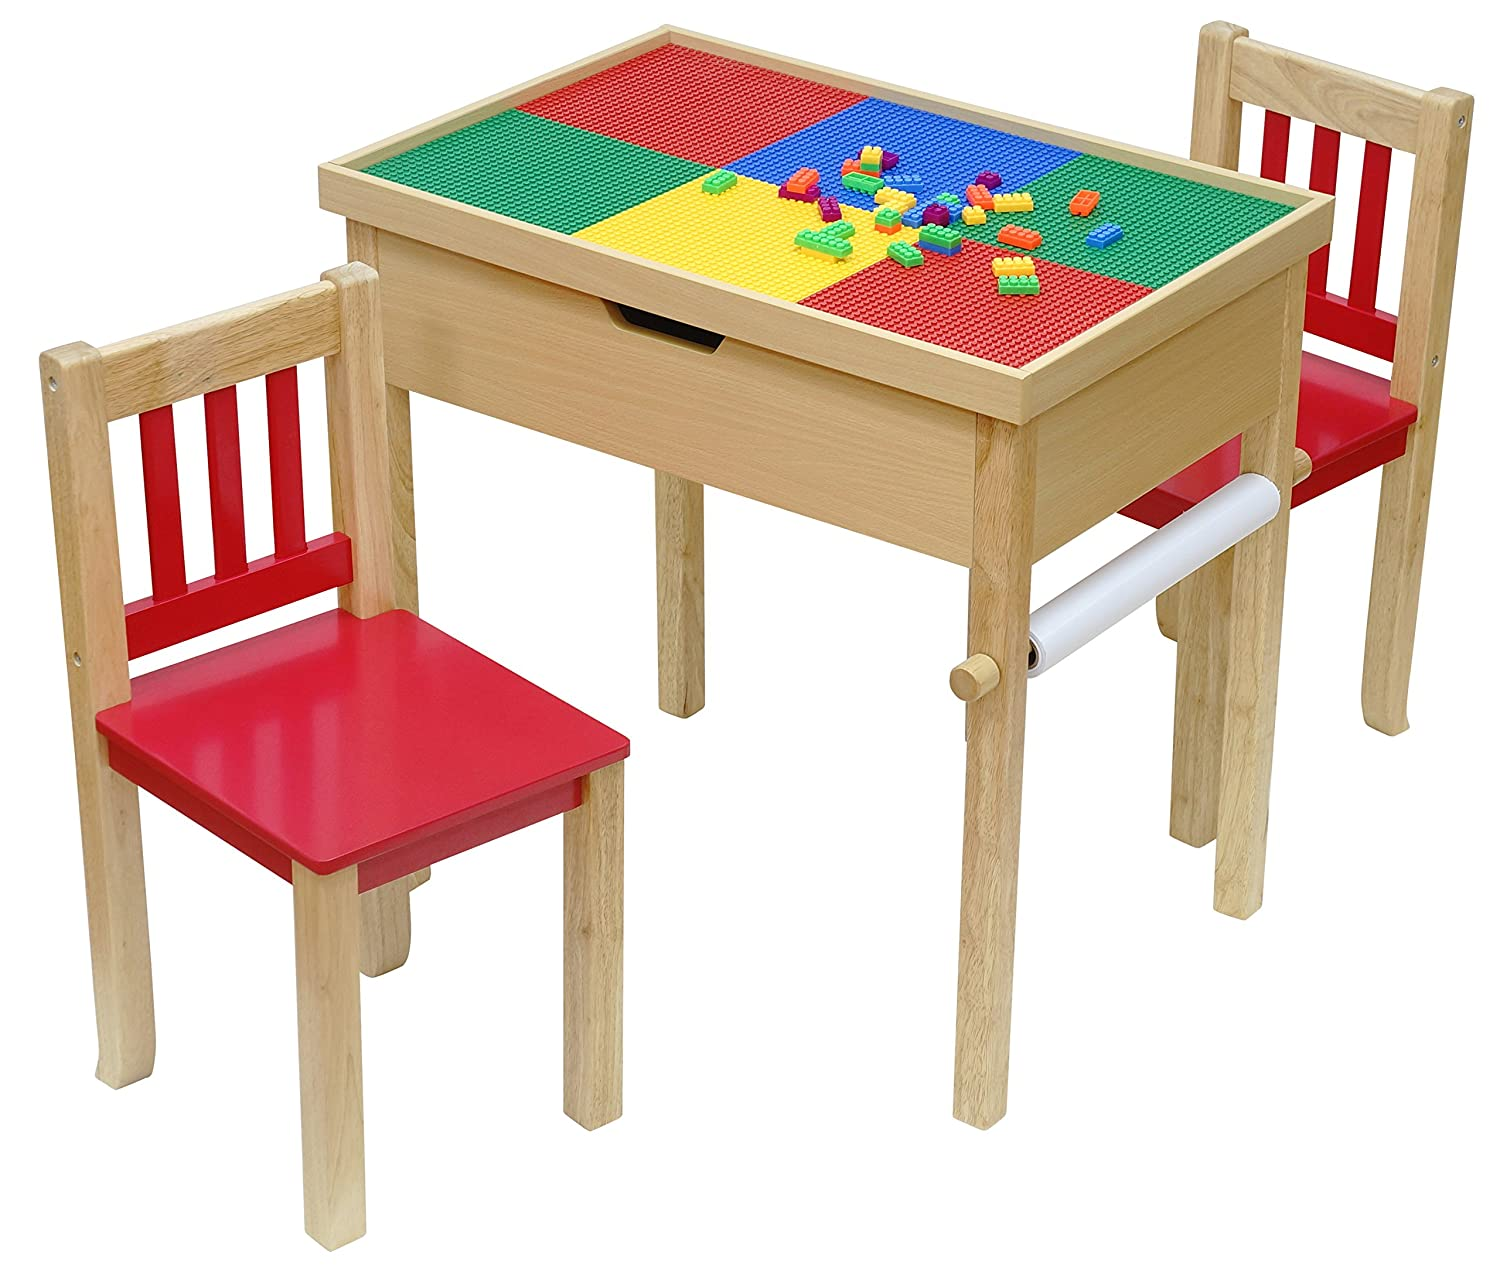 OKids Batman Deluxe 4-in-1 Flip Top Multi-Function Wooden Activity Table and Chair Set